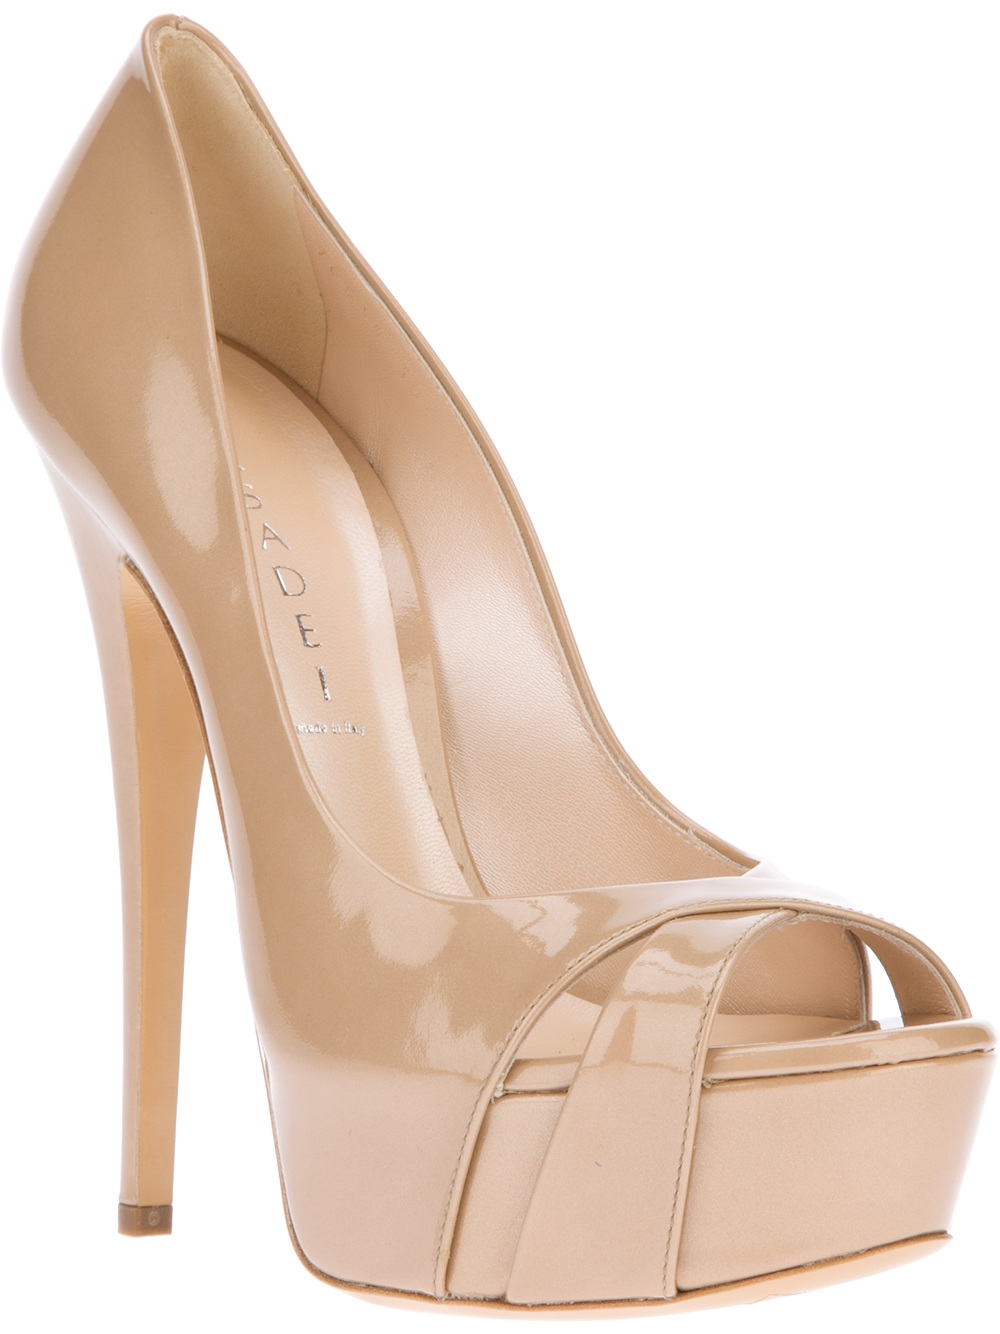 Casadei Peep-Toe Slingback Pumps many kinds of sale online from china low shipping fee xoSqs